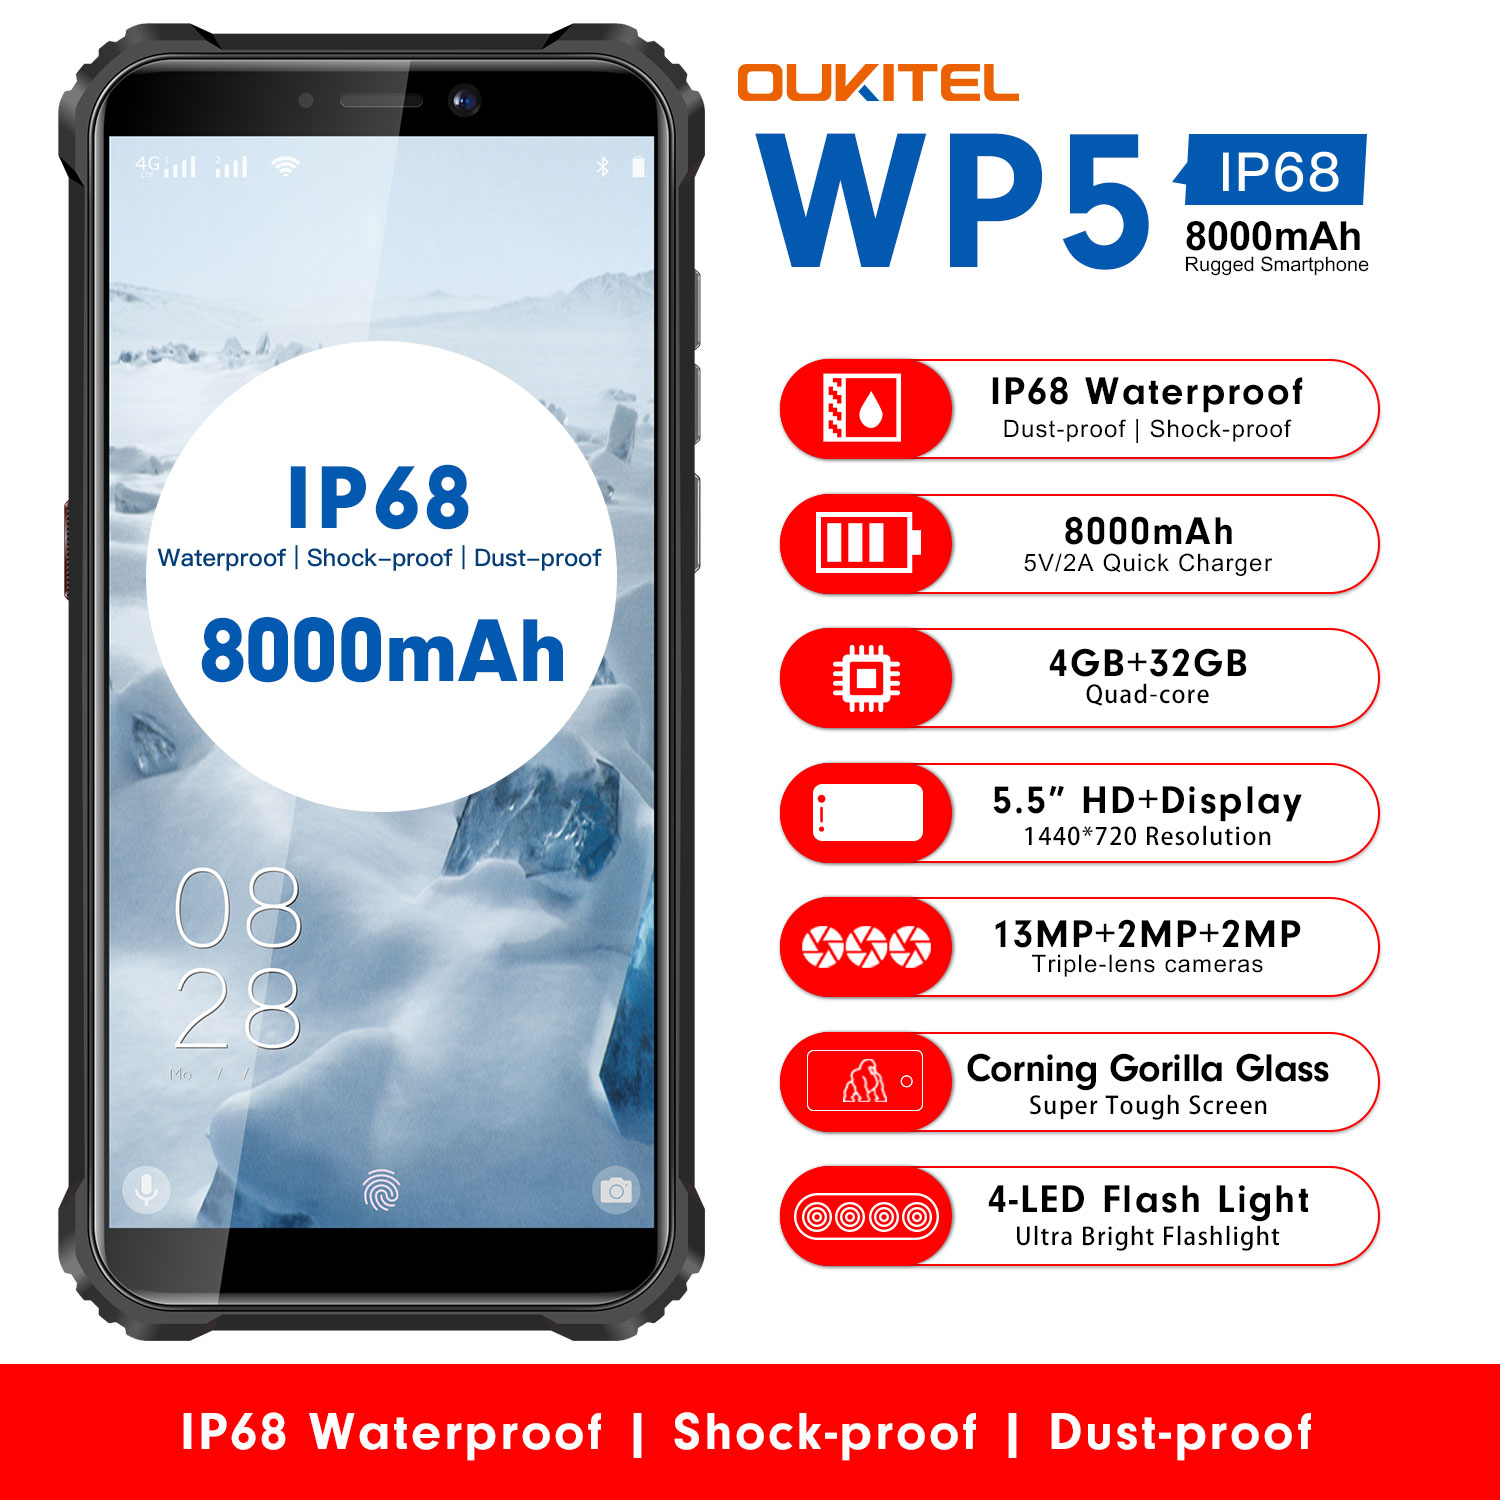 OUKITEL WP5 IP68 Waterproof 32GB 4gbb GSM/LTE/WCDMA Quick Charge 2.0 Gorilla Glass/bluetooth 5.0